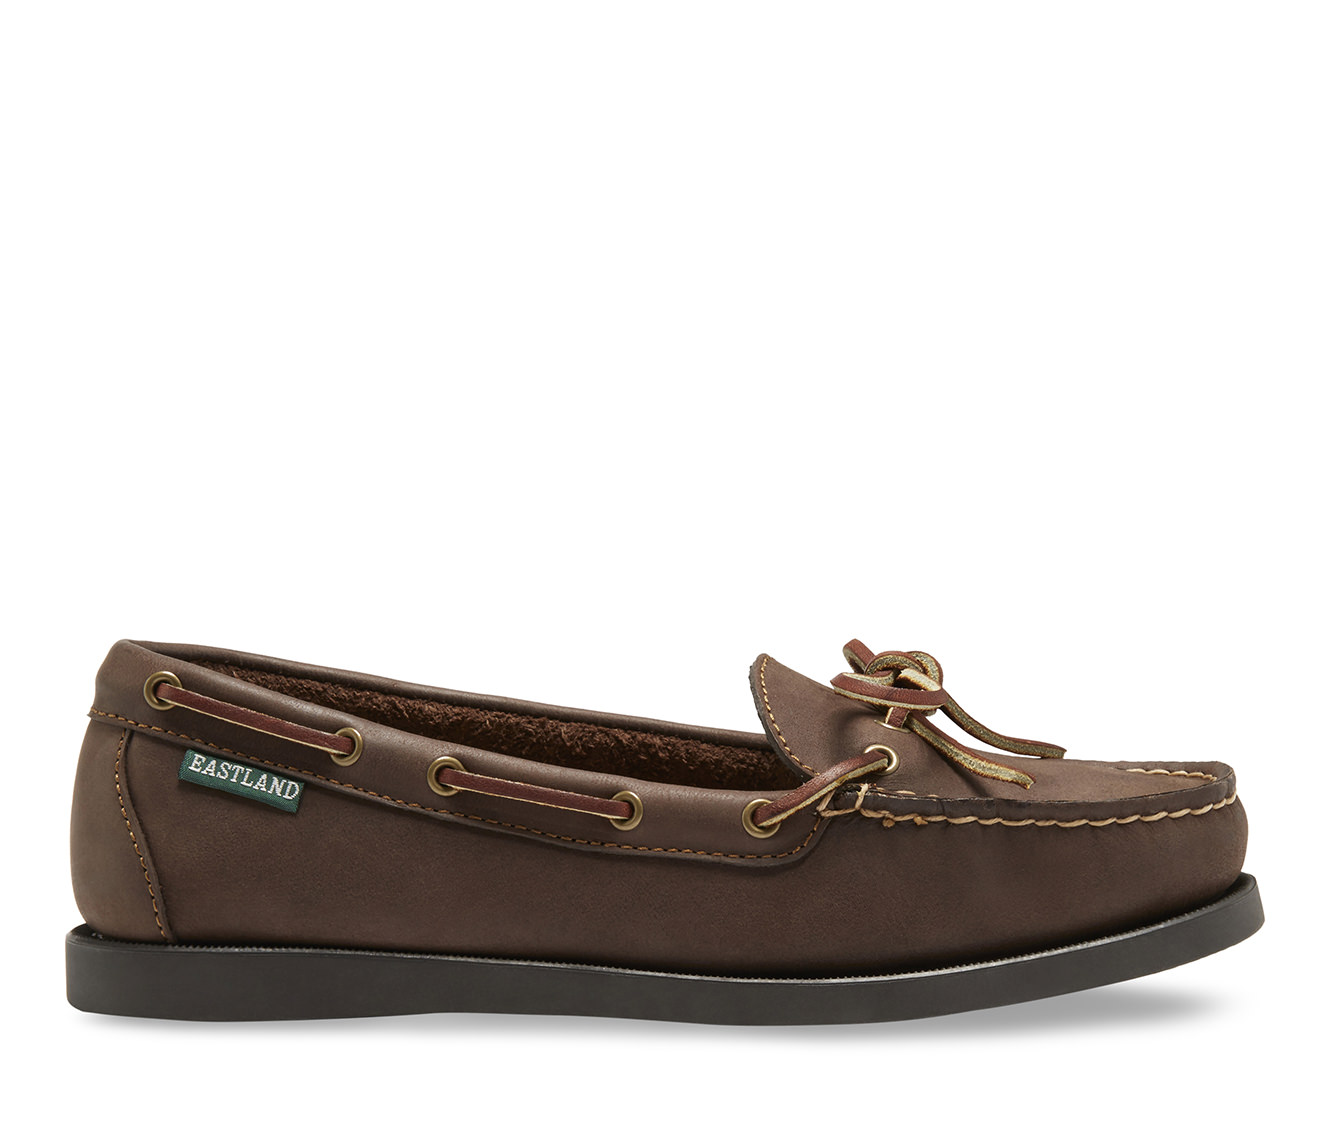 Eastland Yarmouth Women's Shoe (Brown Leather)